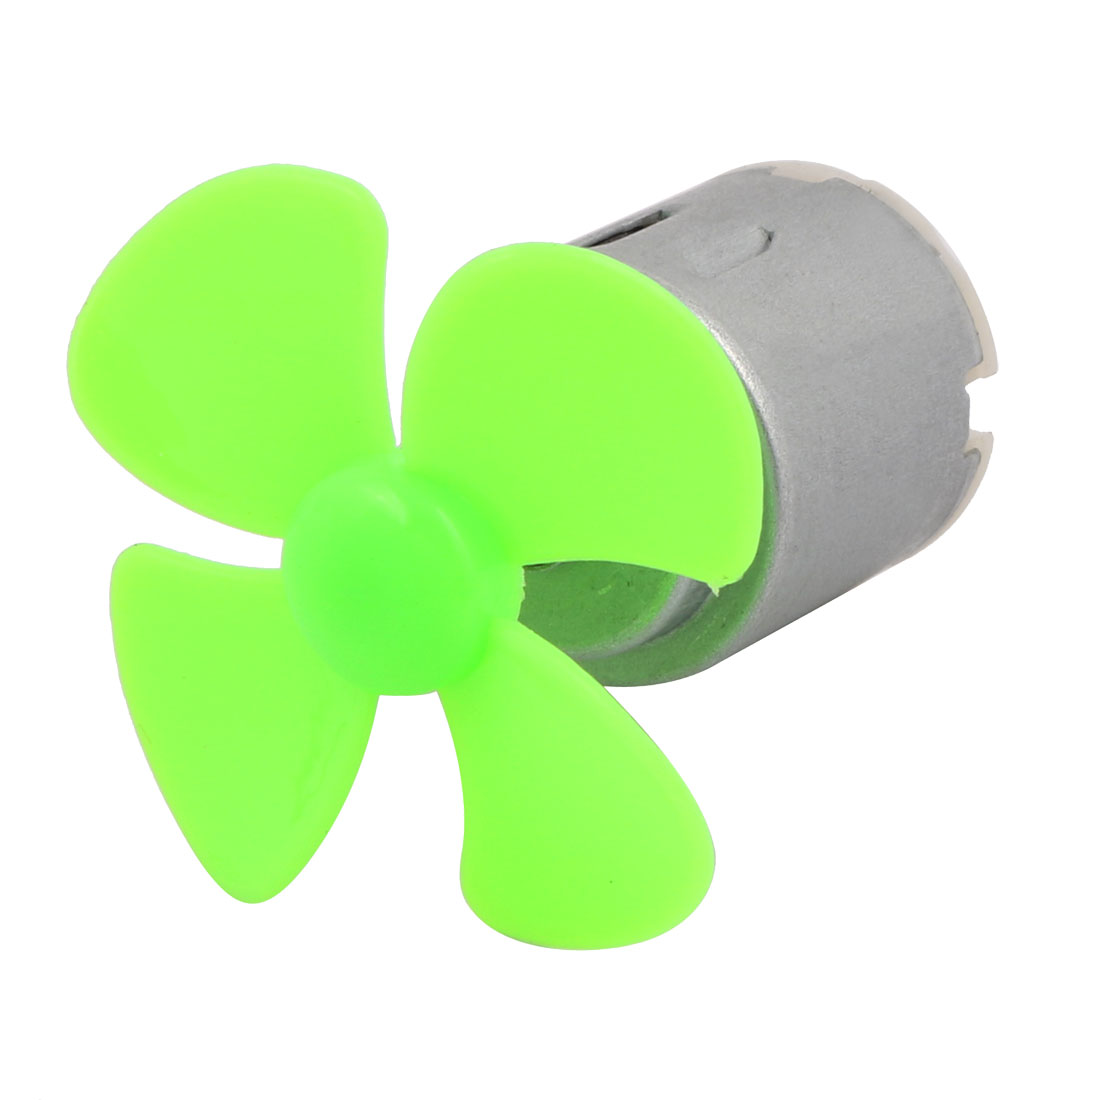 DC 3V 0.13A 17000RPM Strong Force Motor 4 Blades 40mm Green Propeller for RC Aircraft